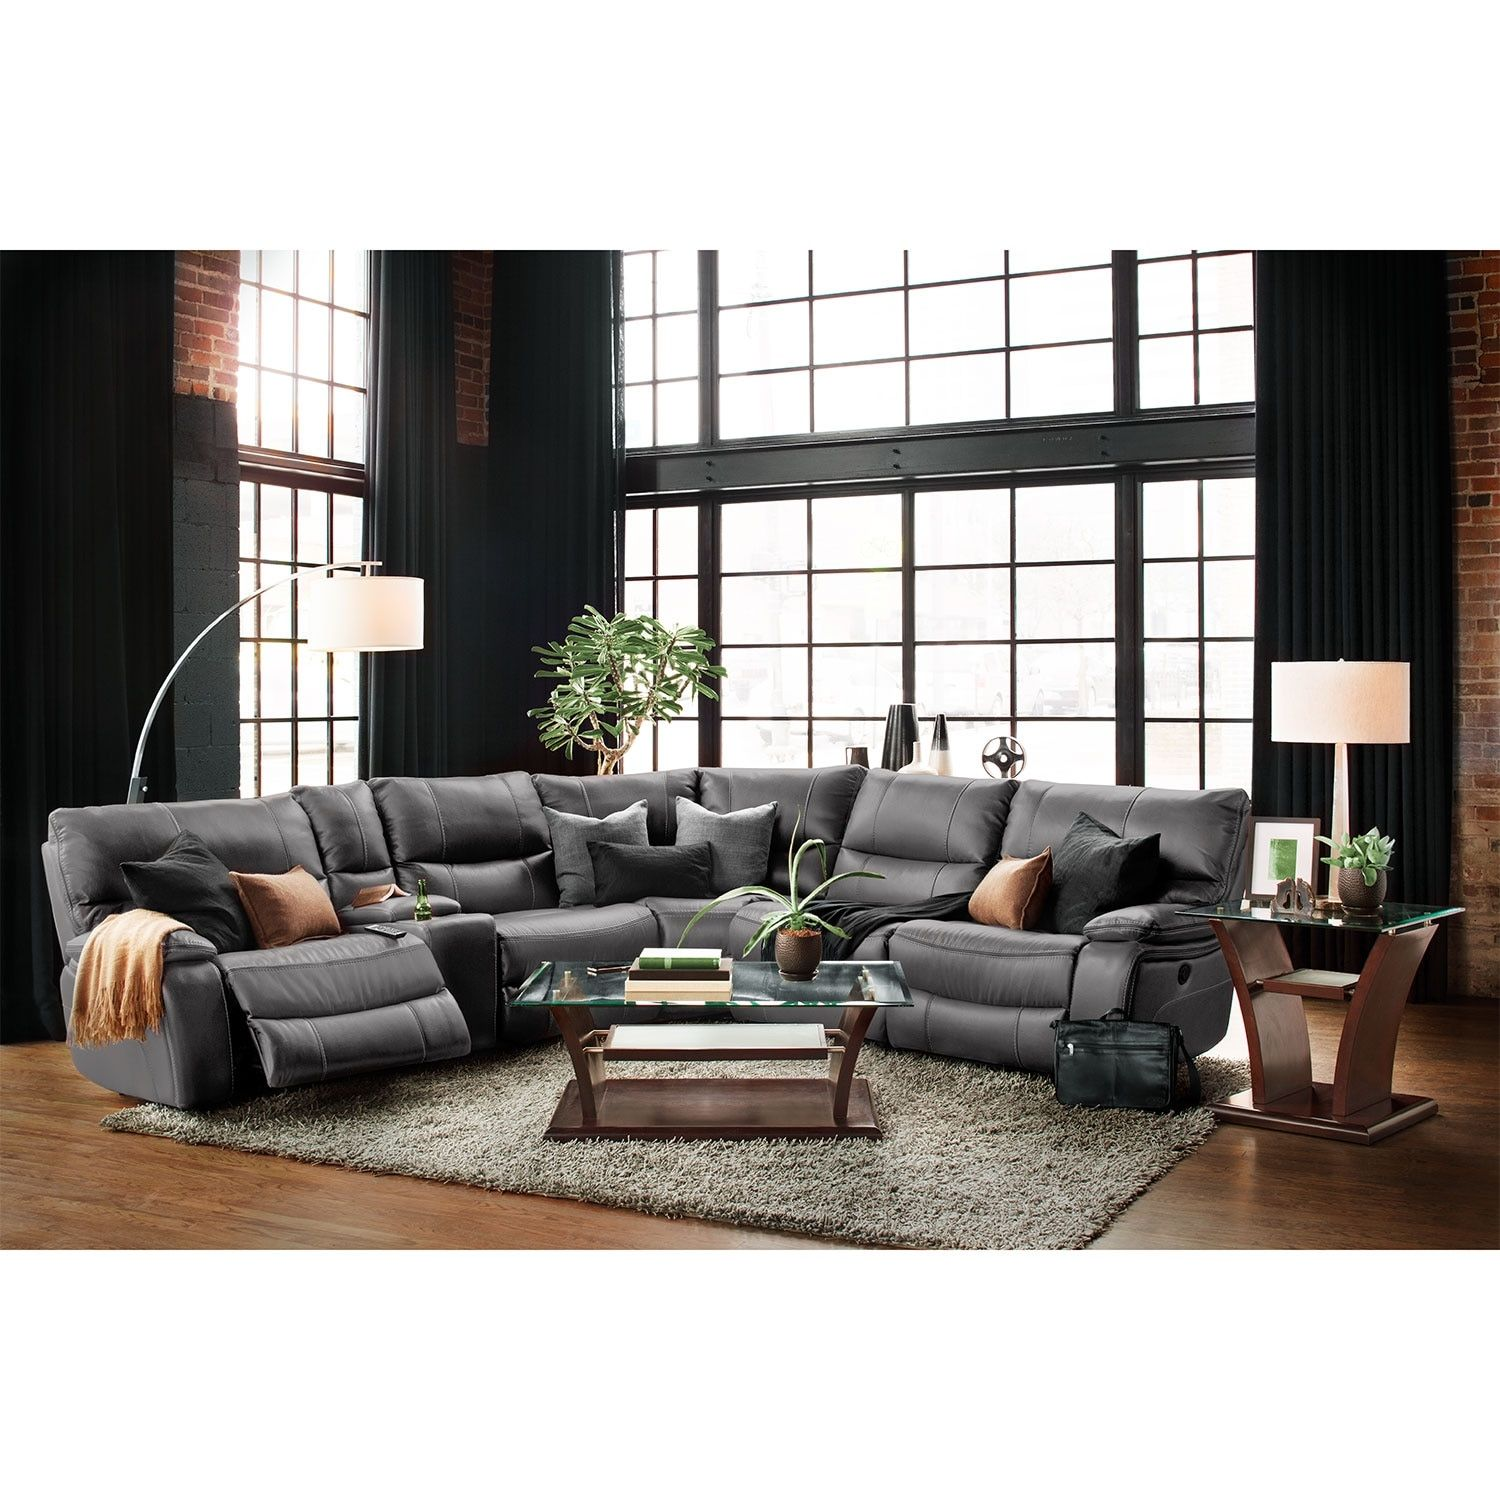 grey reclining sectional from michael s house ideas sectional rh pinterest com